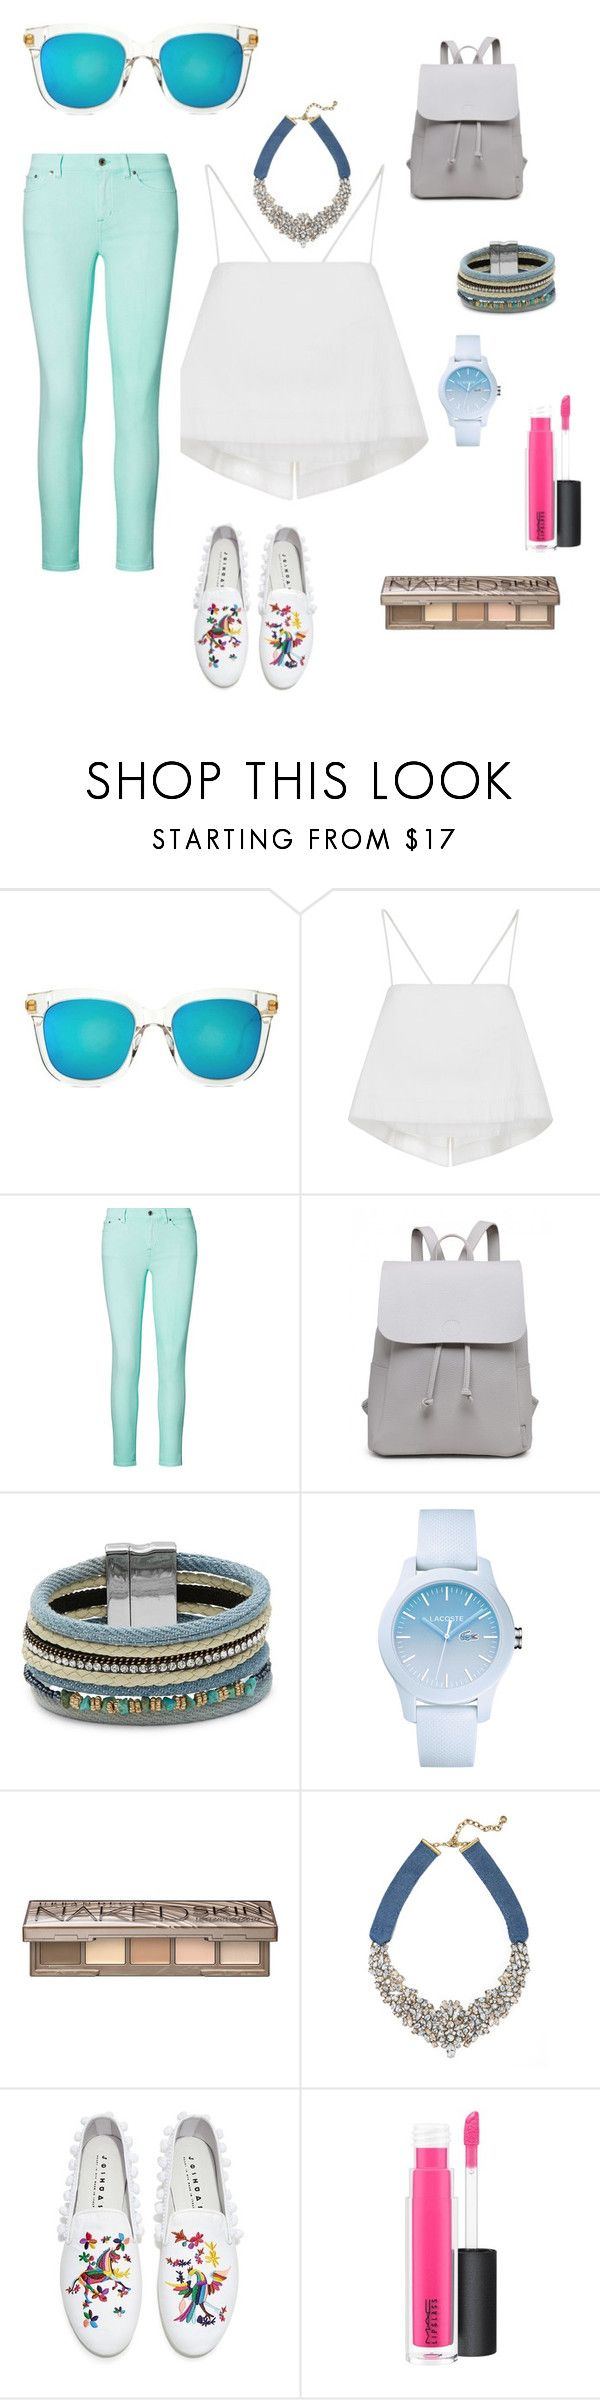 """Fresh and shimmy"" by danny-fernandez ❤ liked on Polyvore featuring Gentle Monster, A.L.C., Ralph Lauren, Design Lab, Lacoste, Urban Decay, BaubleBar, Joshua's and MAC Cosmetics"